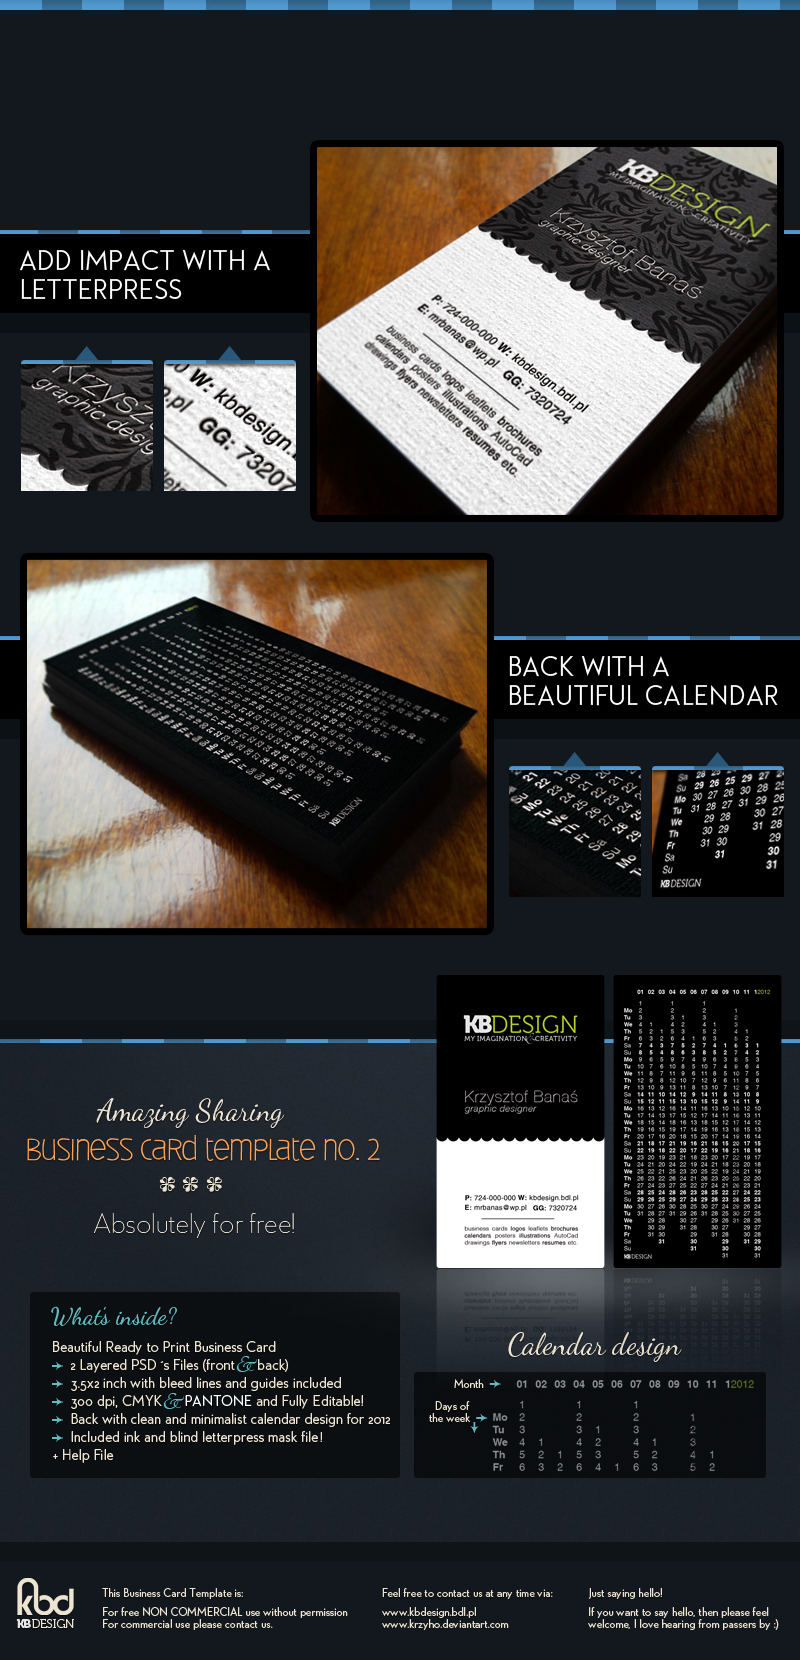 Business Card Template no.2